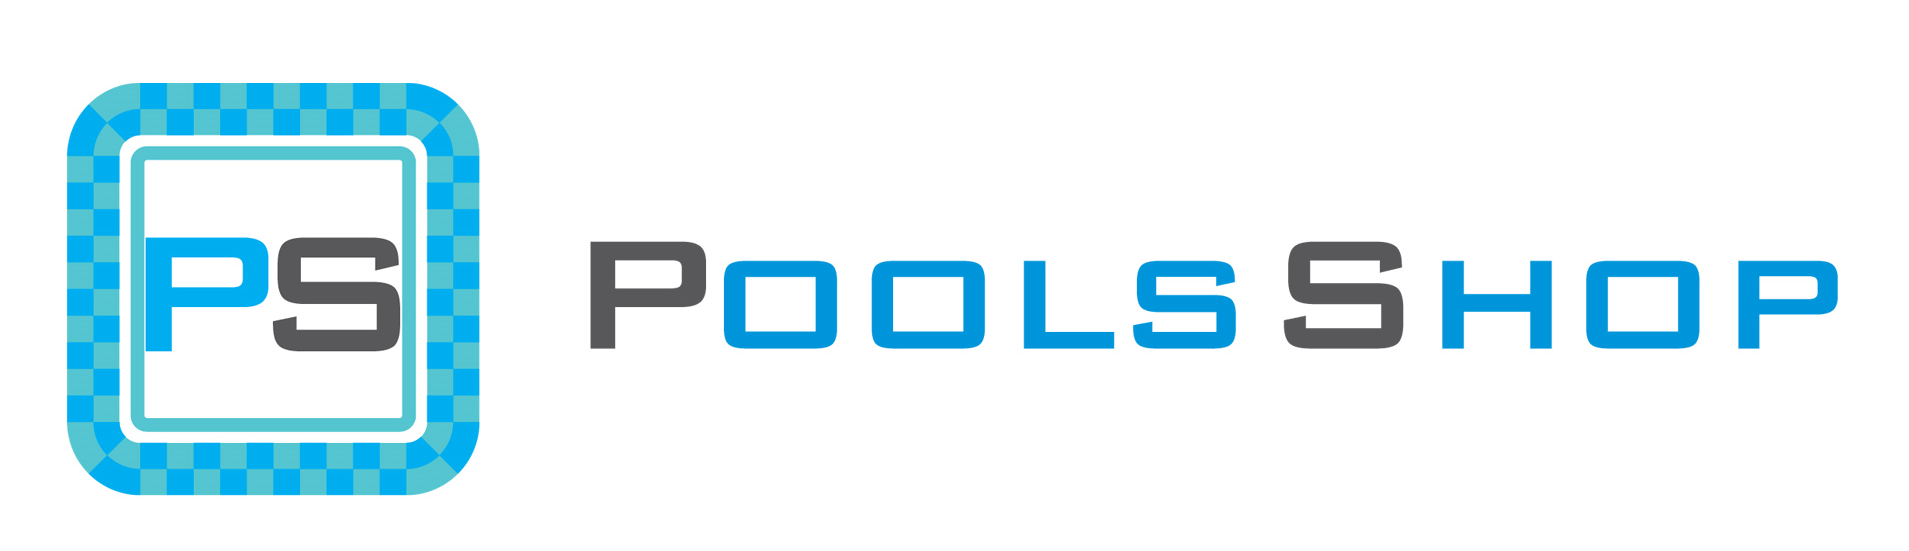 PoolsShop